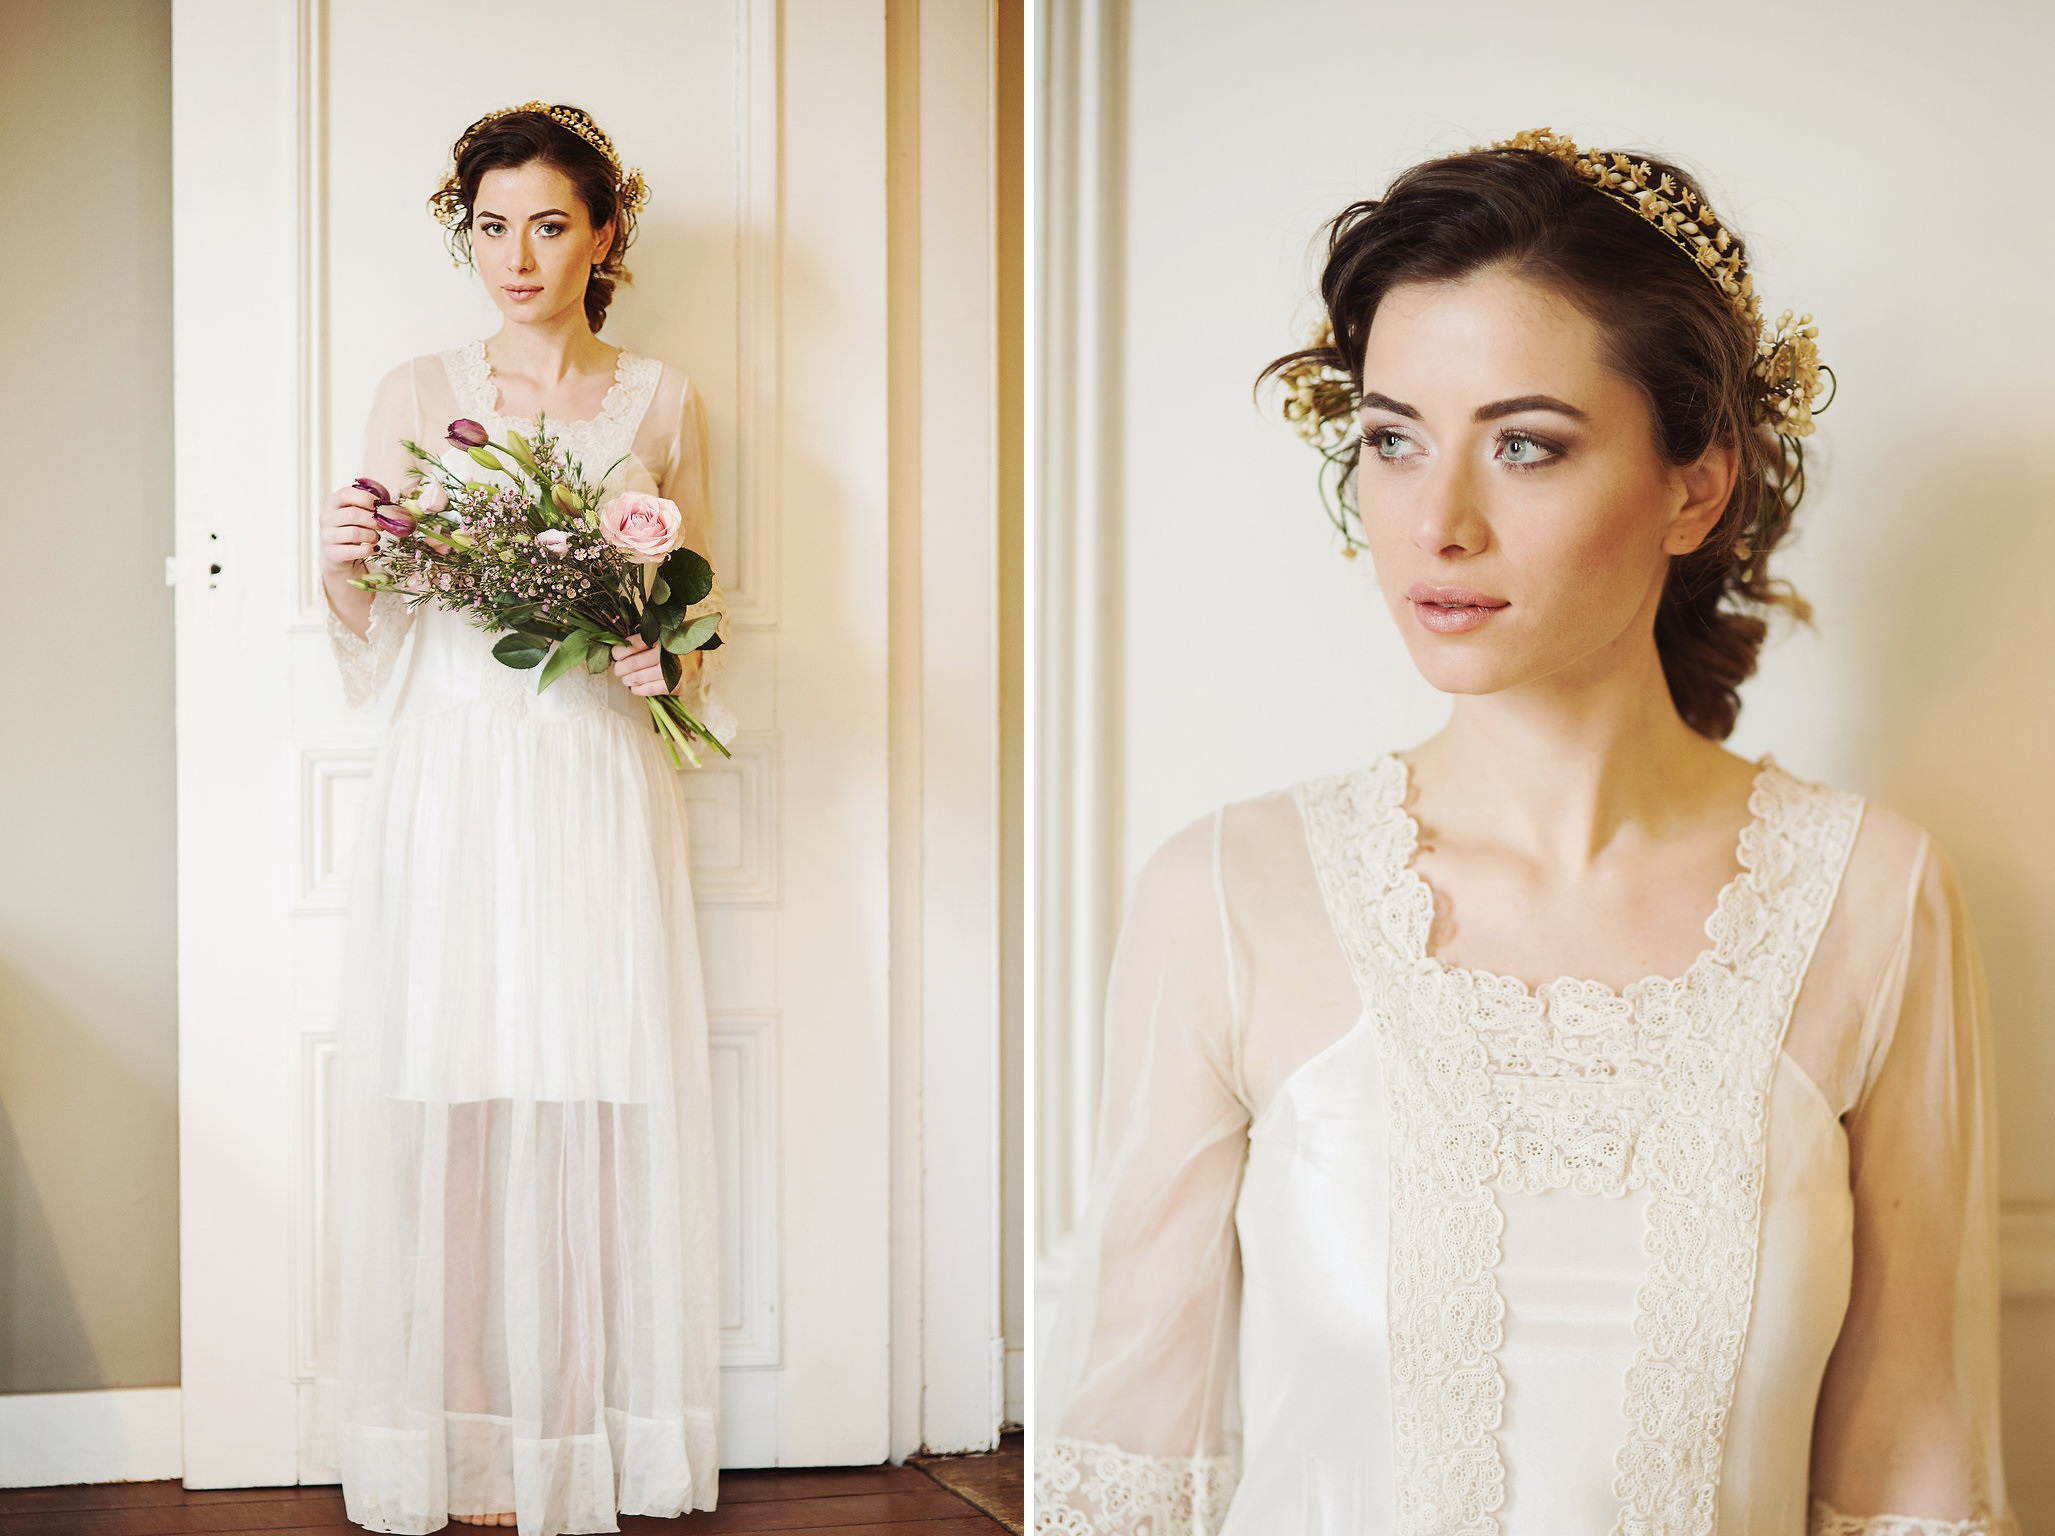 A Joy Forever - Beautiful Bridal Inspiration with Edwardian Era Wedding Dresses